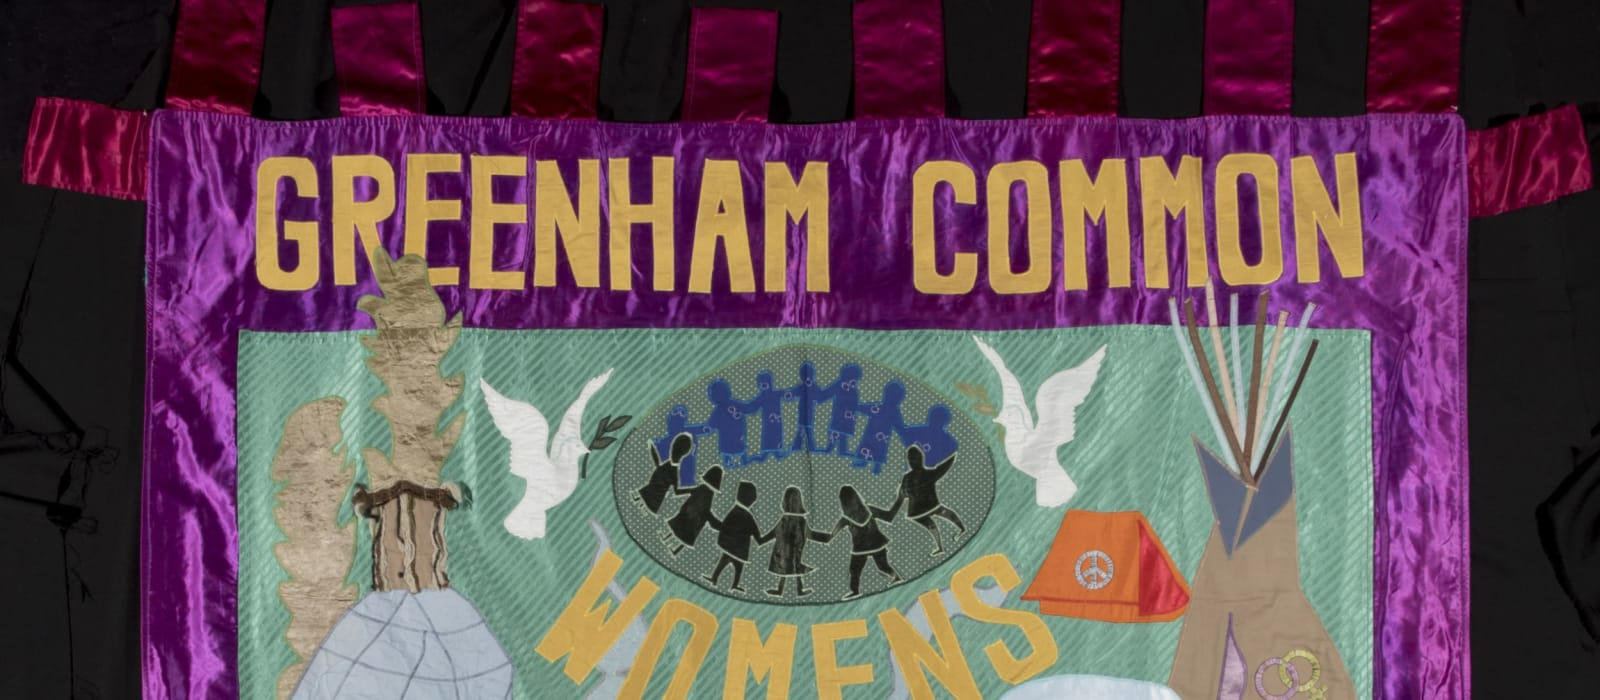 2020 Objects of Peace: The Greenham Common Banner